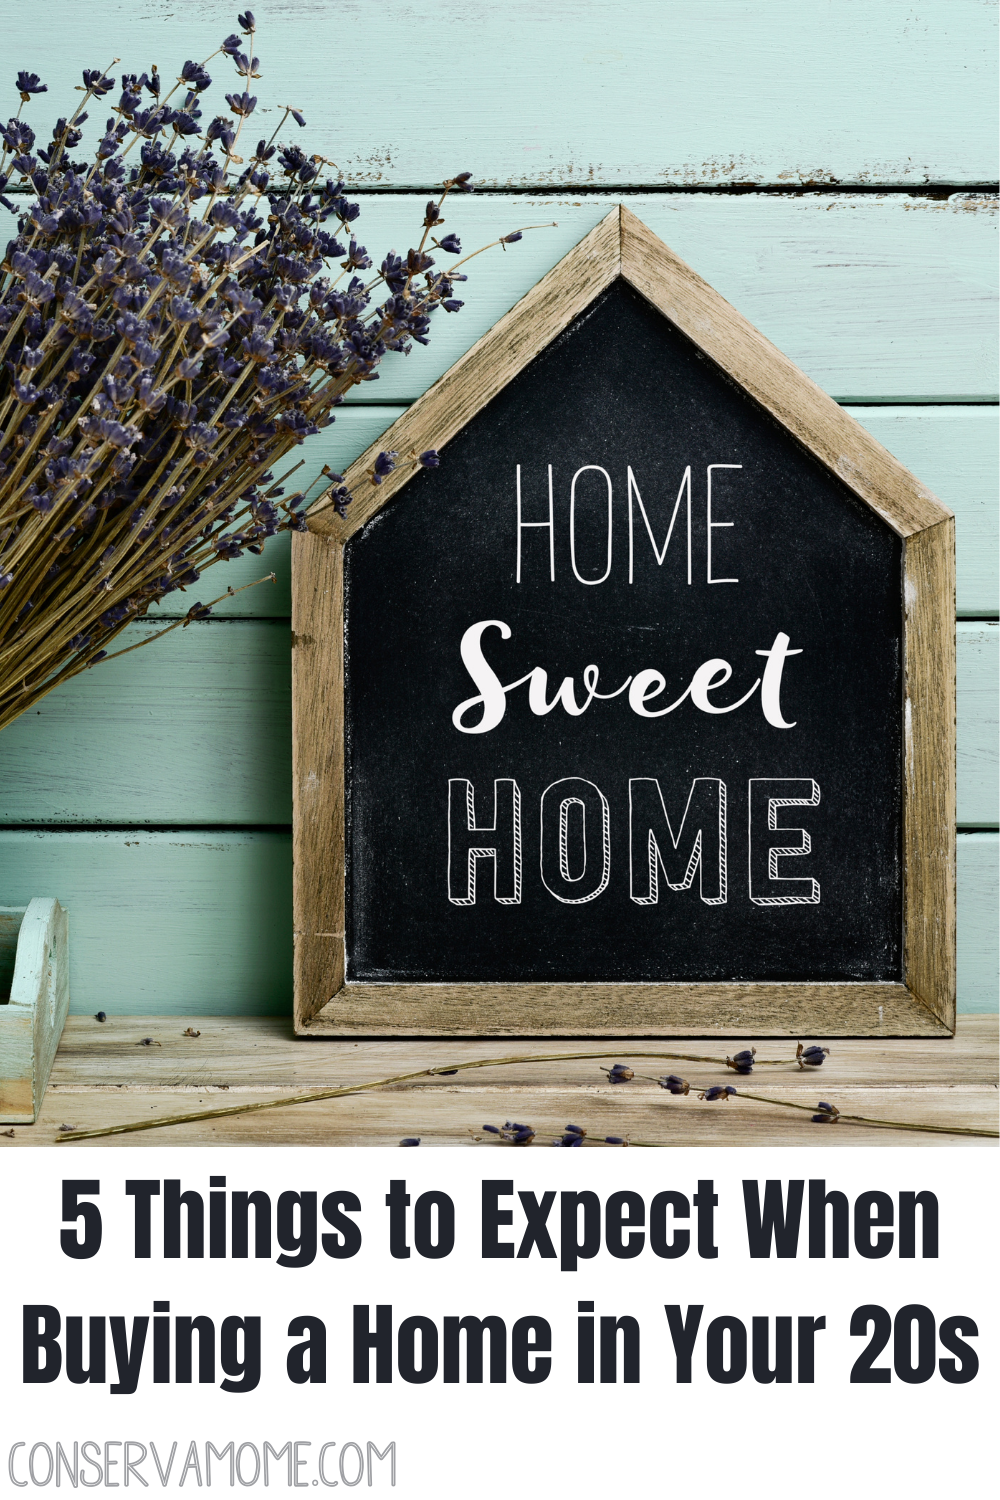 5 Things to Expect When Buying a Home in Your 20s